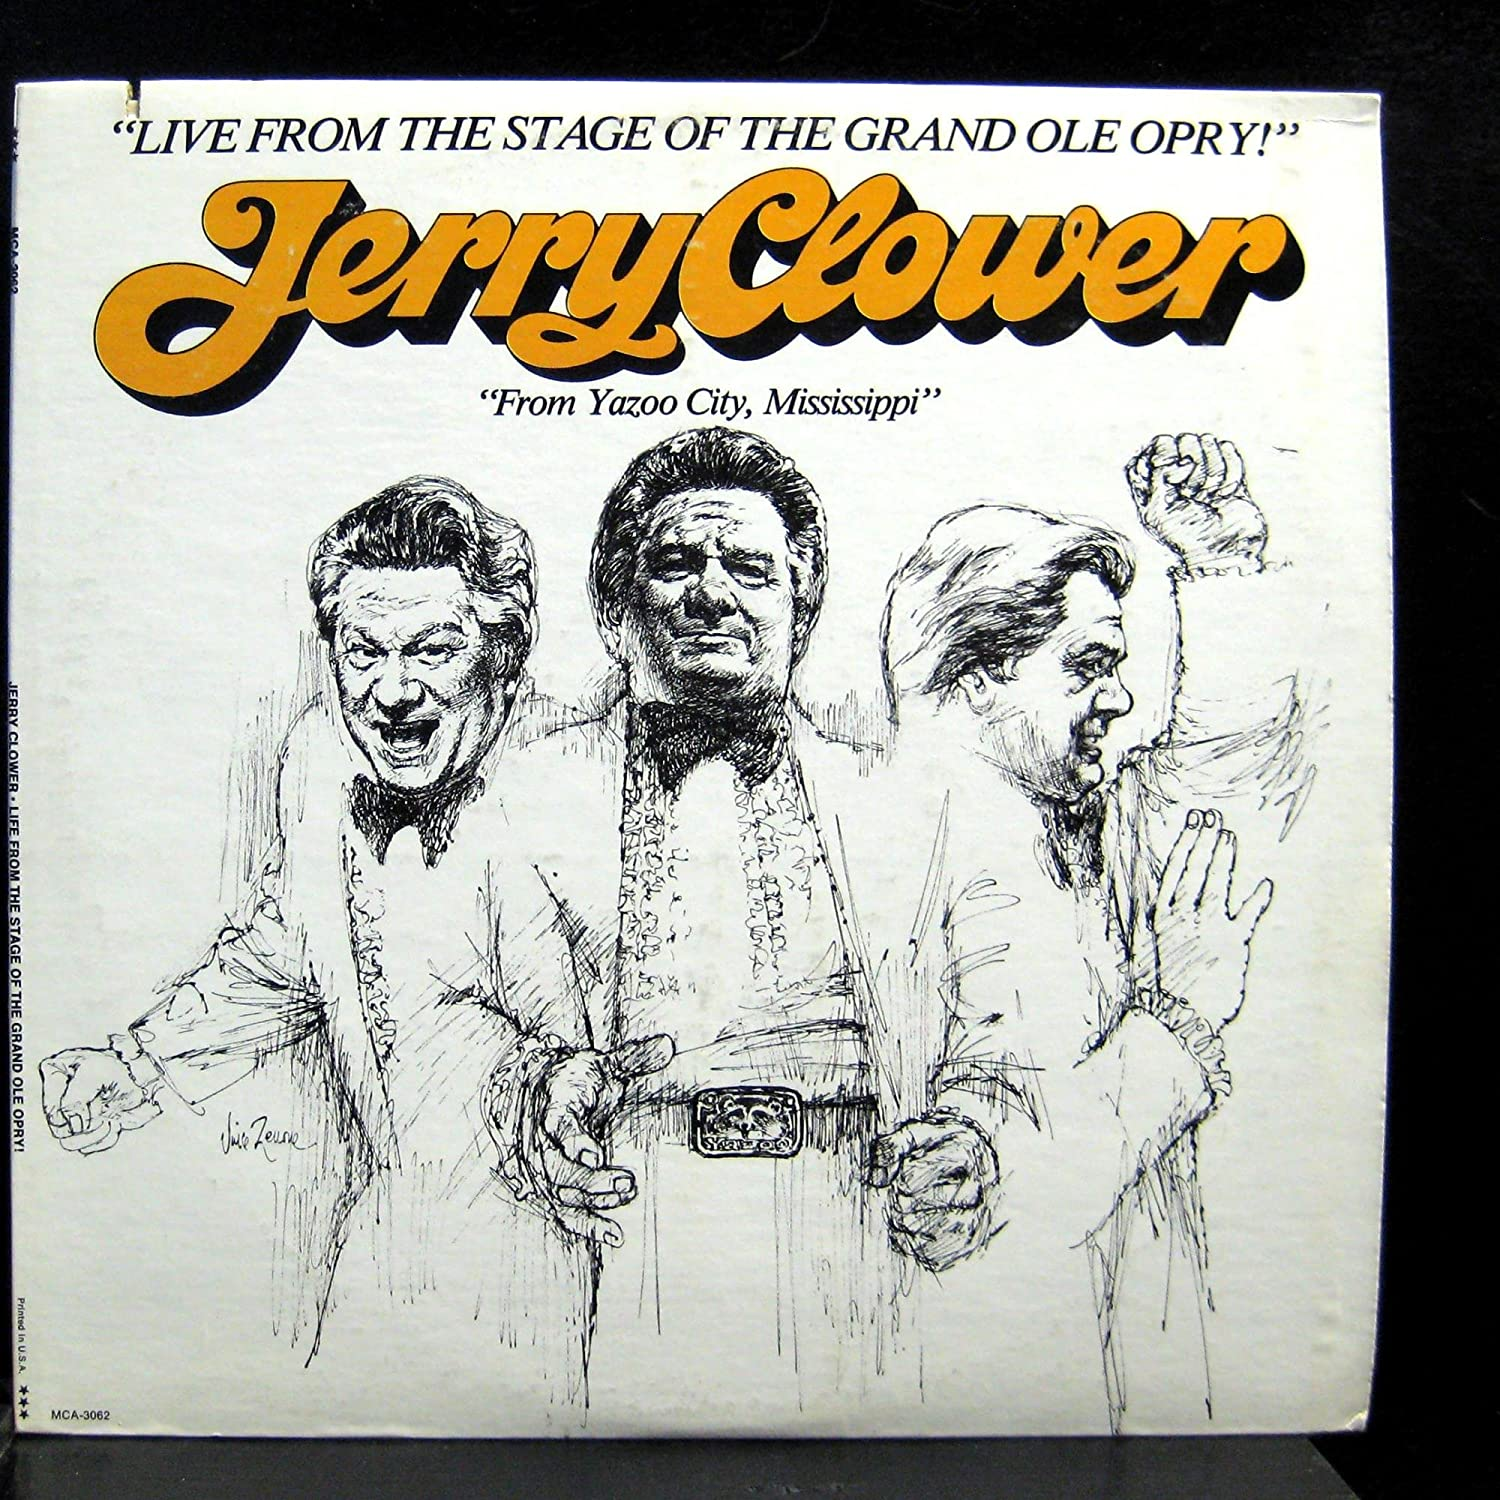 Jerry clower jerry clower from yazoo city mississippi amazon jerry clower jerry clower from yazoo city mississippi amazon music arubaitofo Image collections